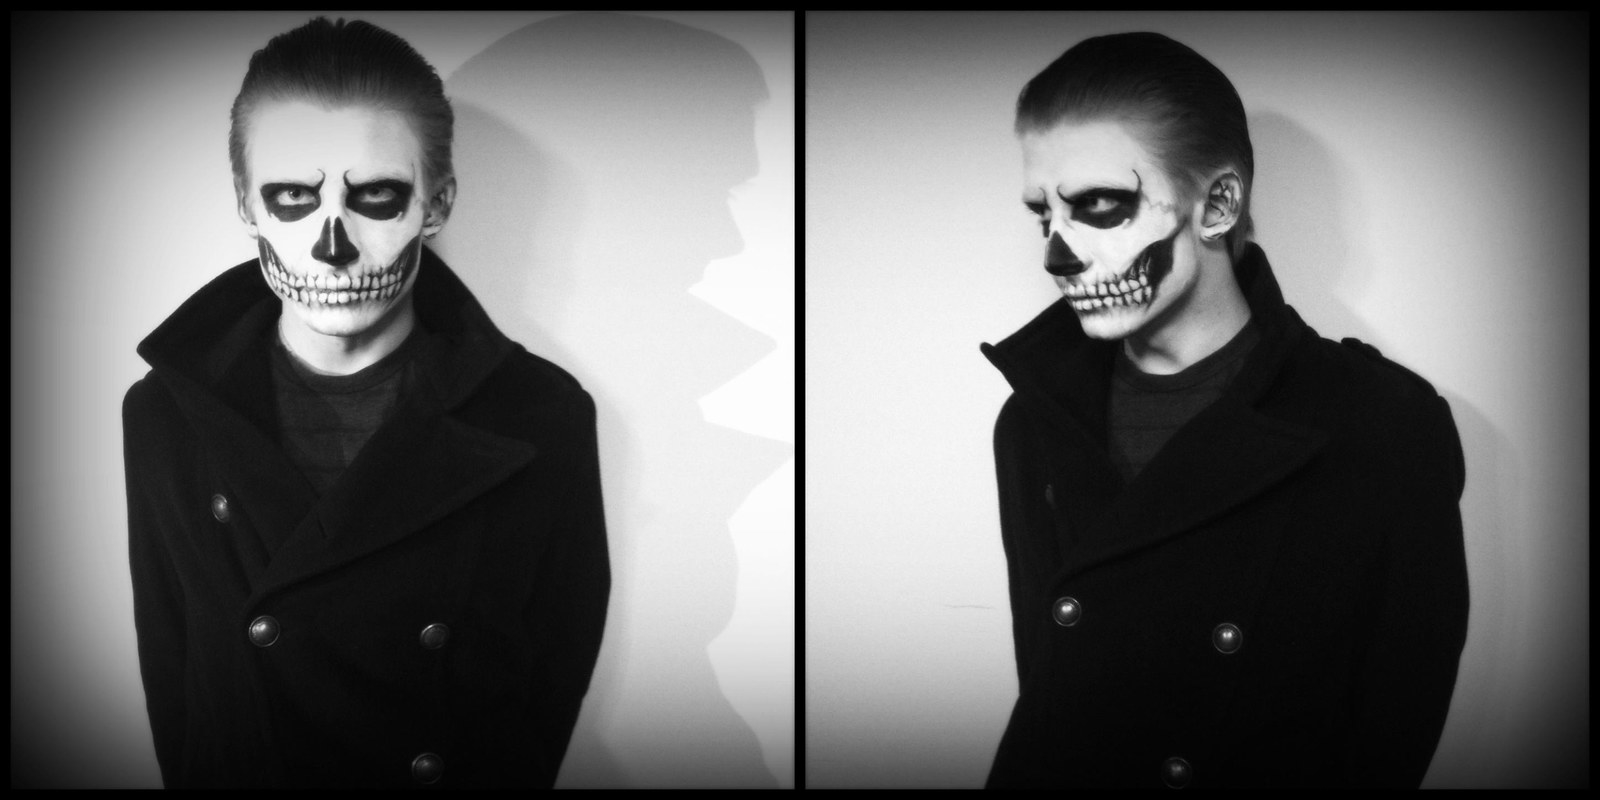 A man with slicked back hair and a trench coat with his face painted like a skeleton.